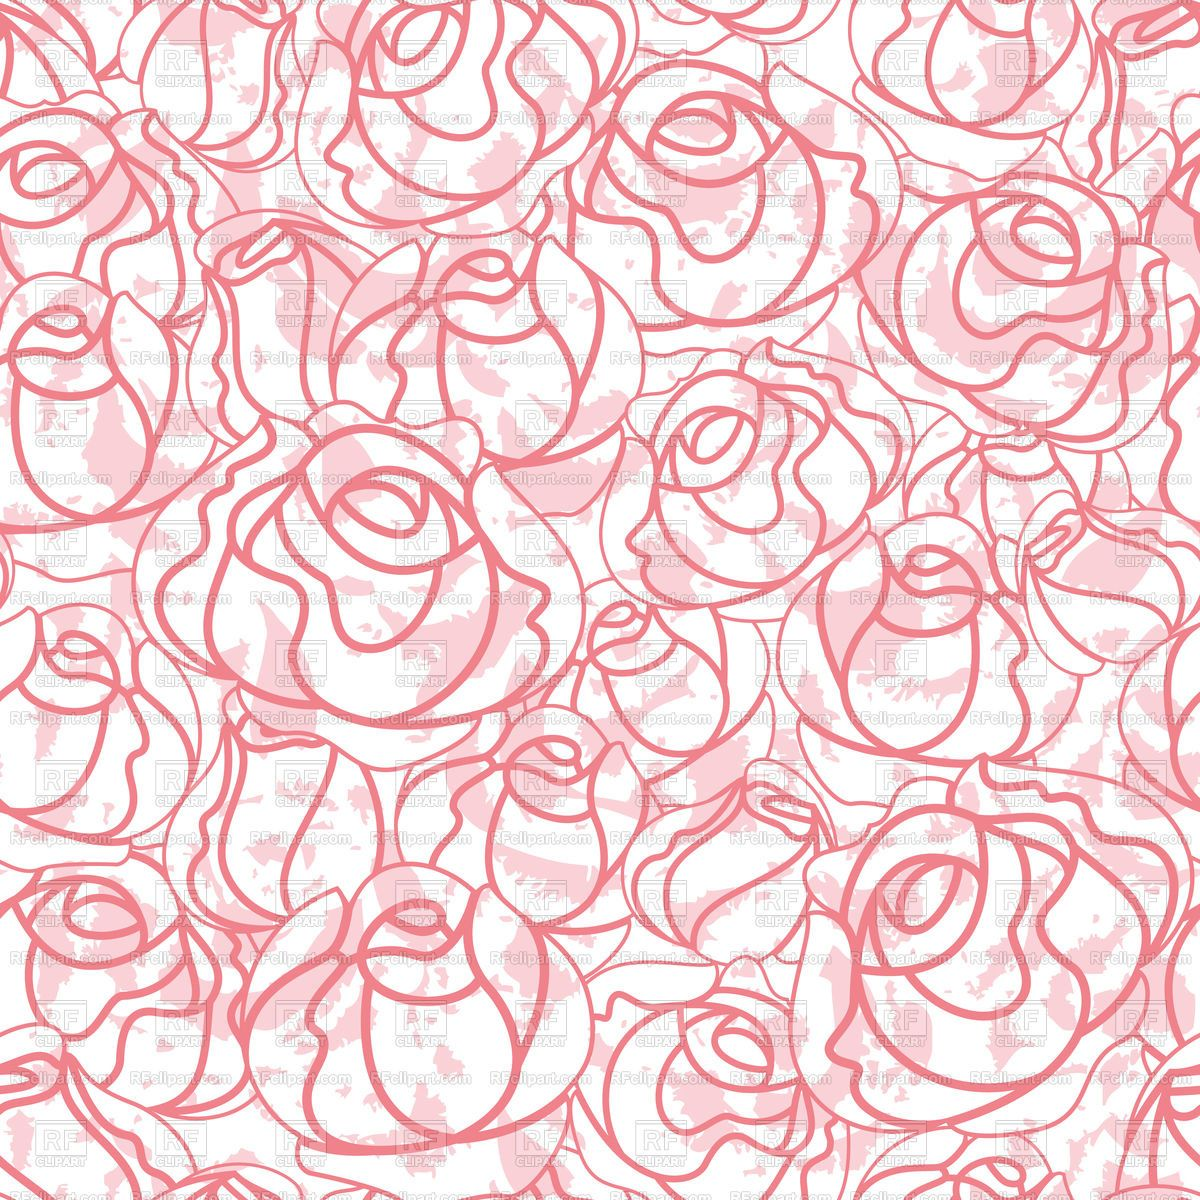 Download royalty-free Seamless roses bud outline pattern stock vector image 18940 from RFclipart collection of stock illustrations and vector graphics.